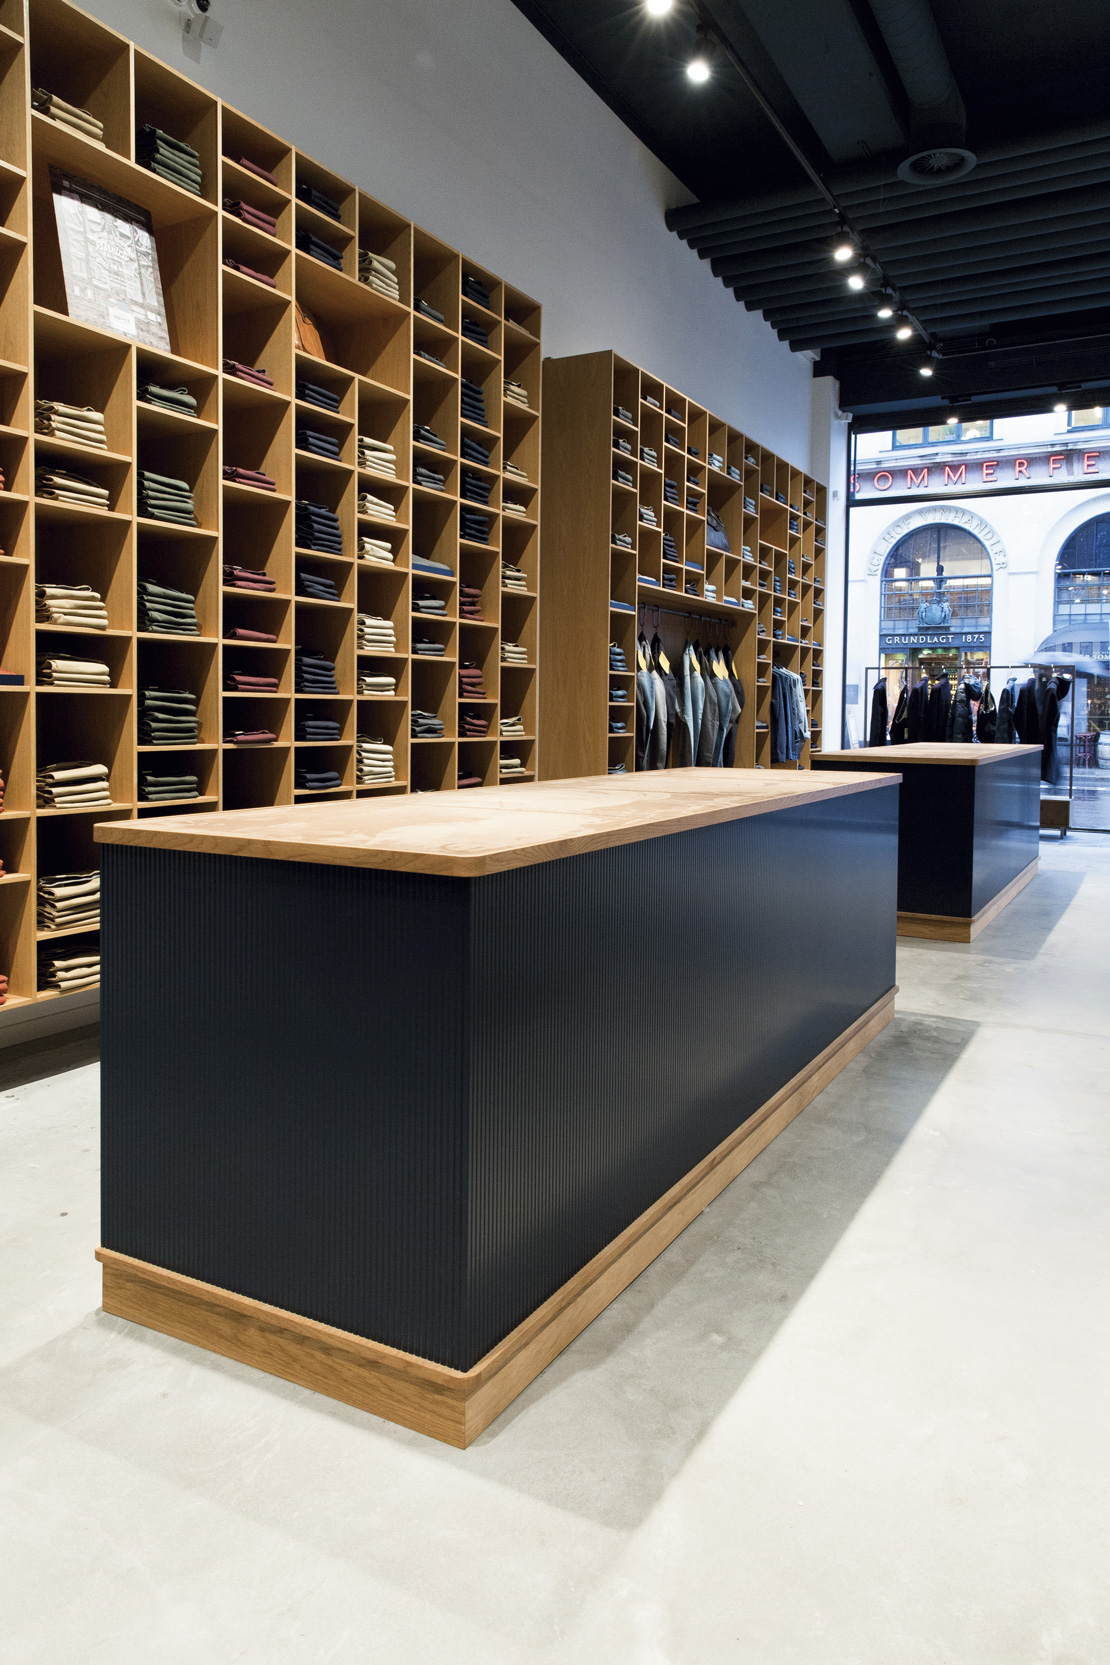 NN07 Concept Store at Gammel Mønt 7 / Official site of ...